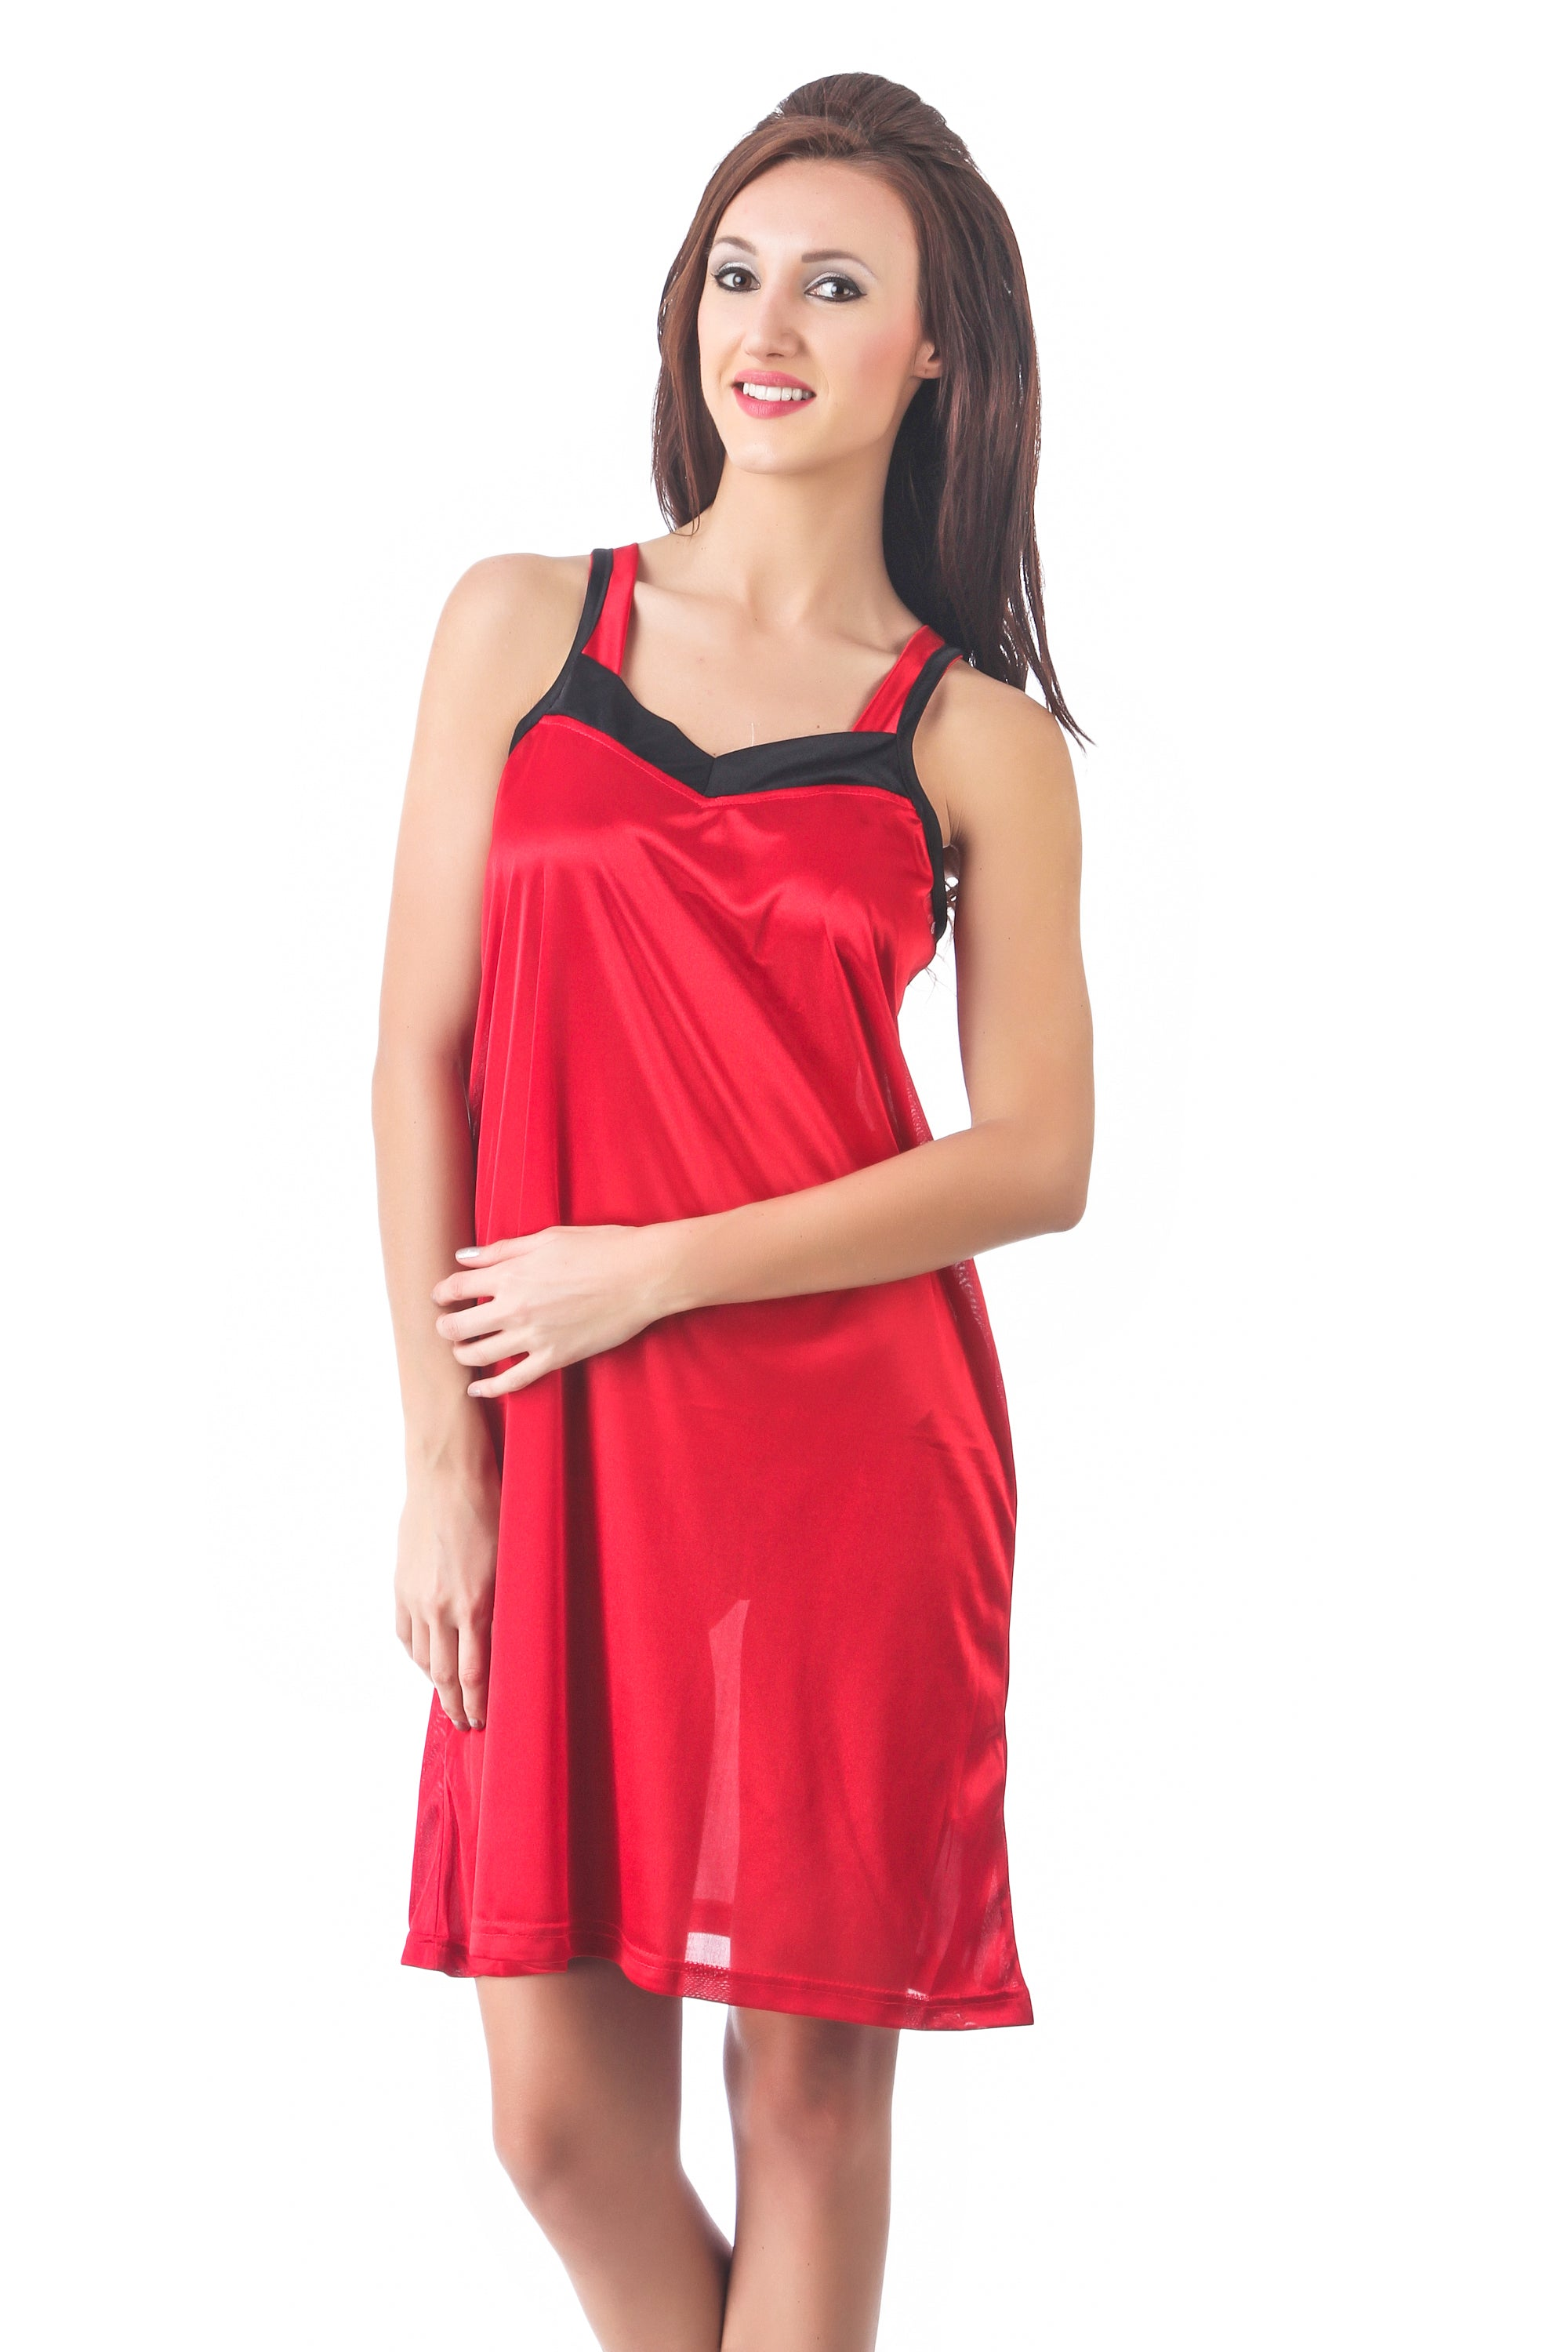 Fasense  Solid Satin Nightwear Short Nighty DP104 - fasensestore